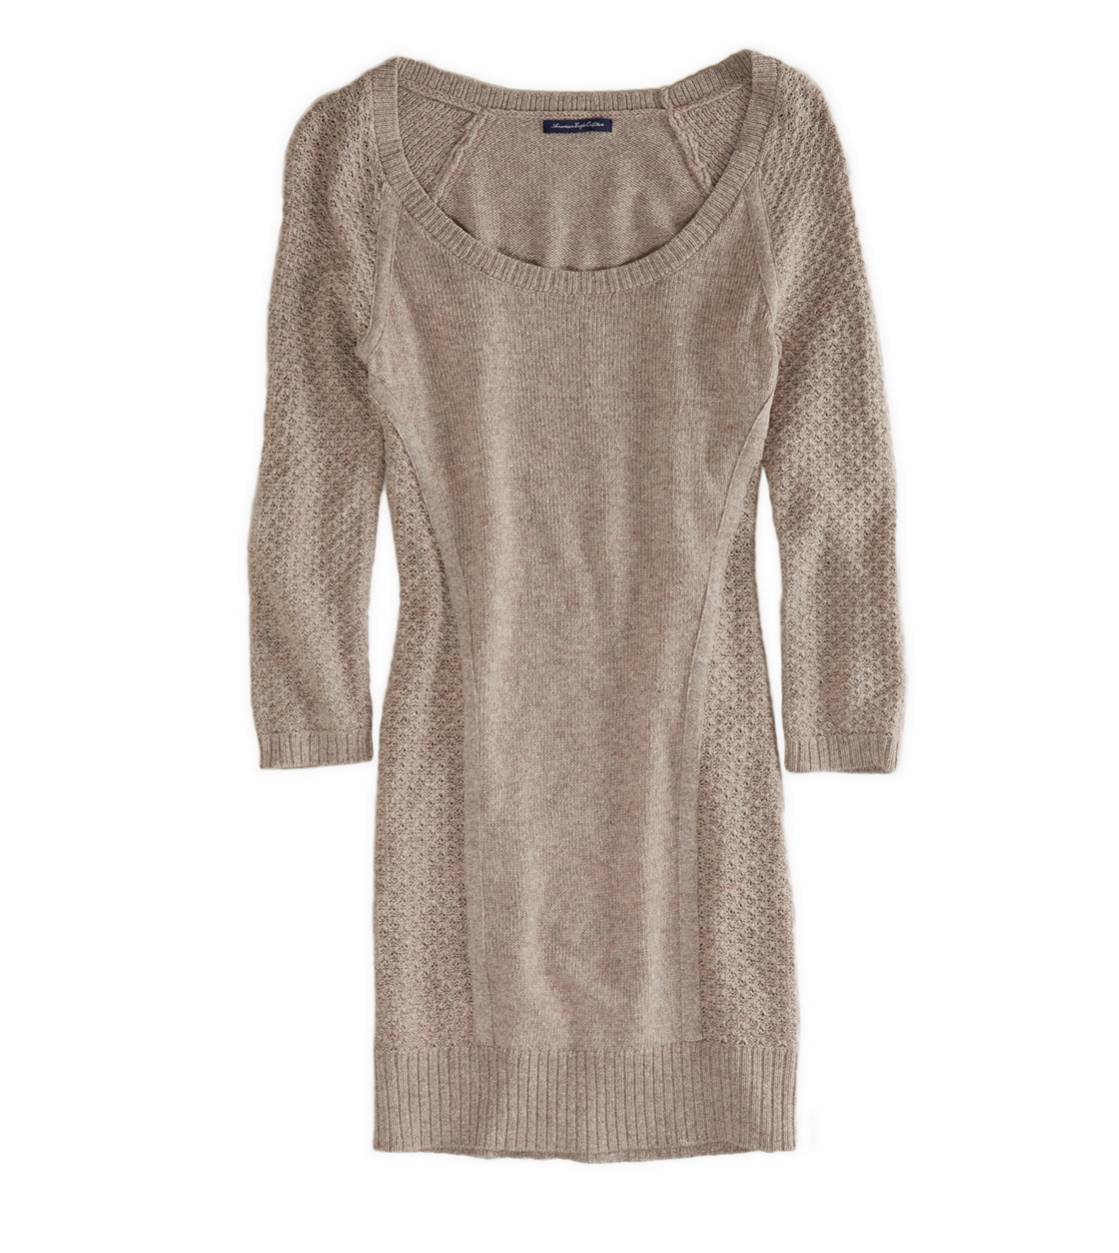 Oatmeal Heather AE Open Stitch Sweater Dress